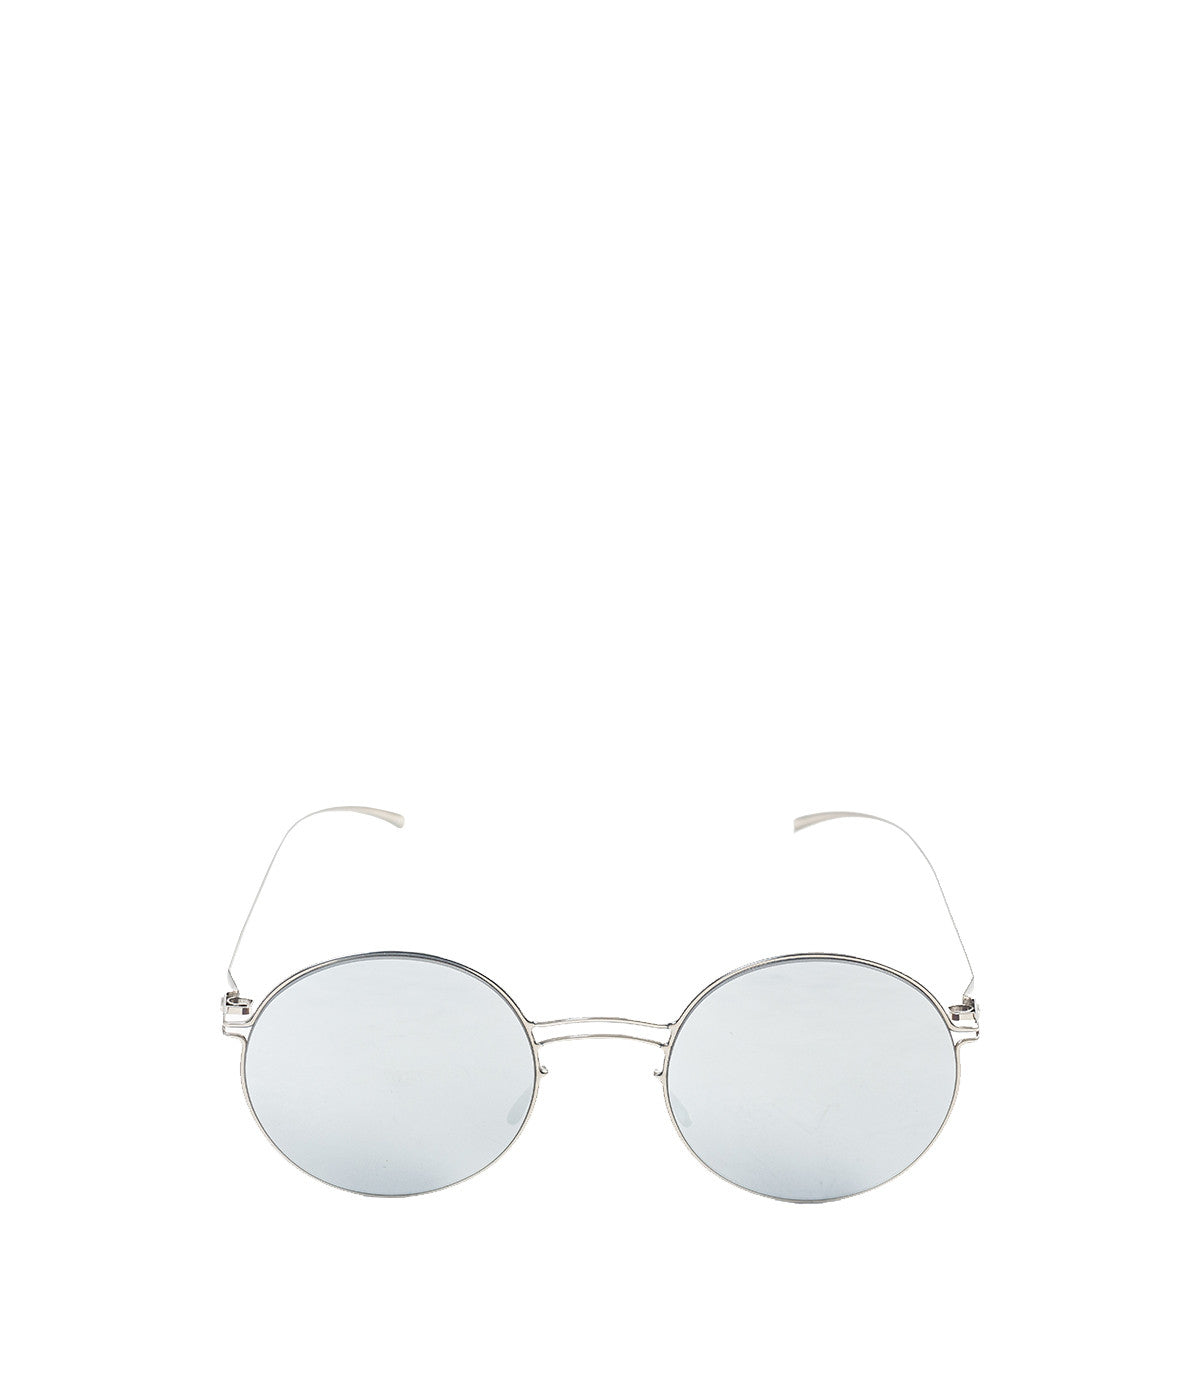 E1 Silver Sunglasses